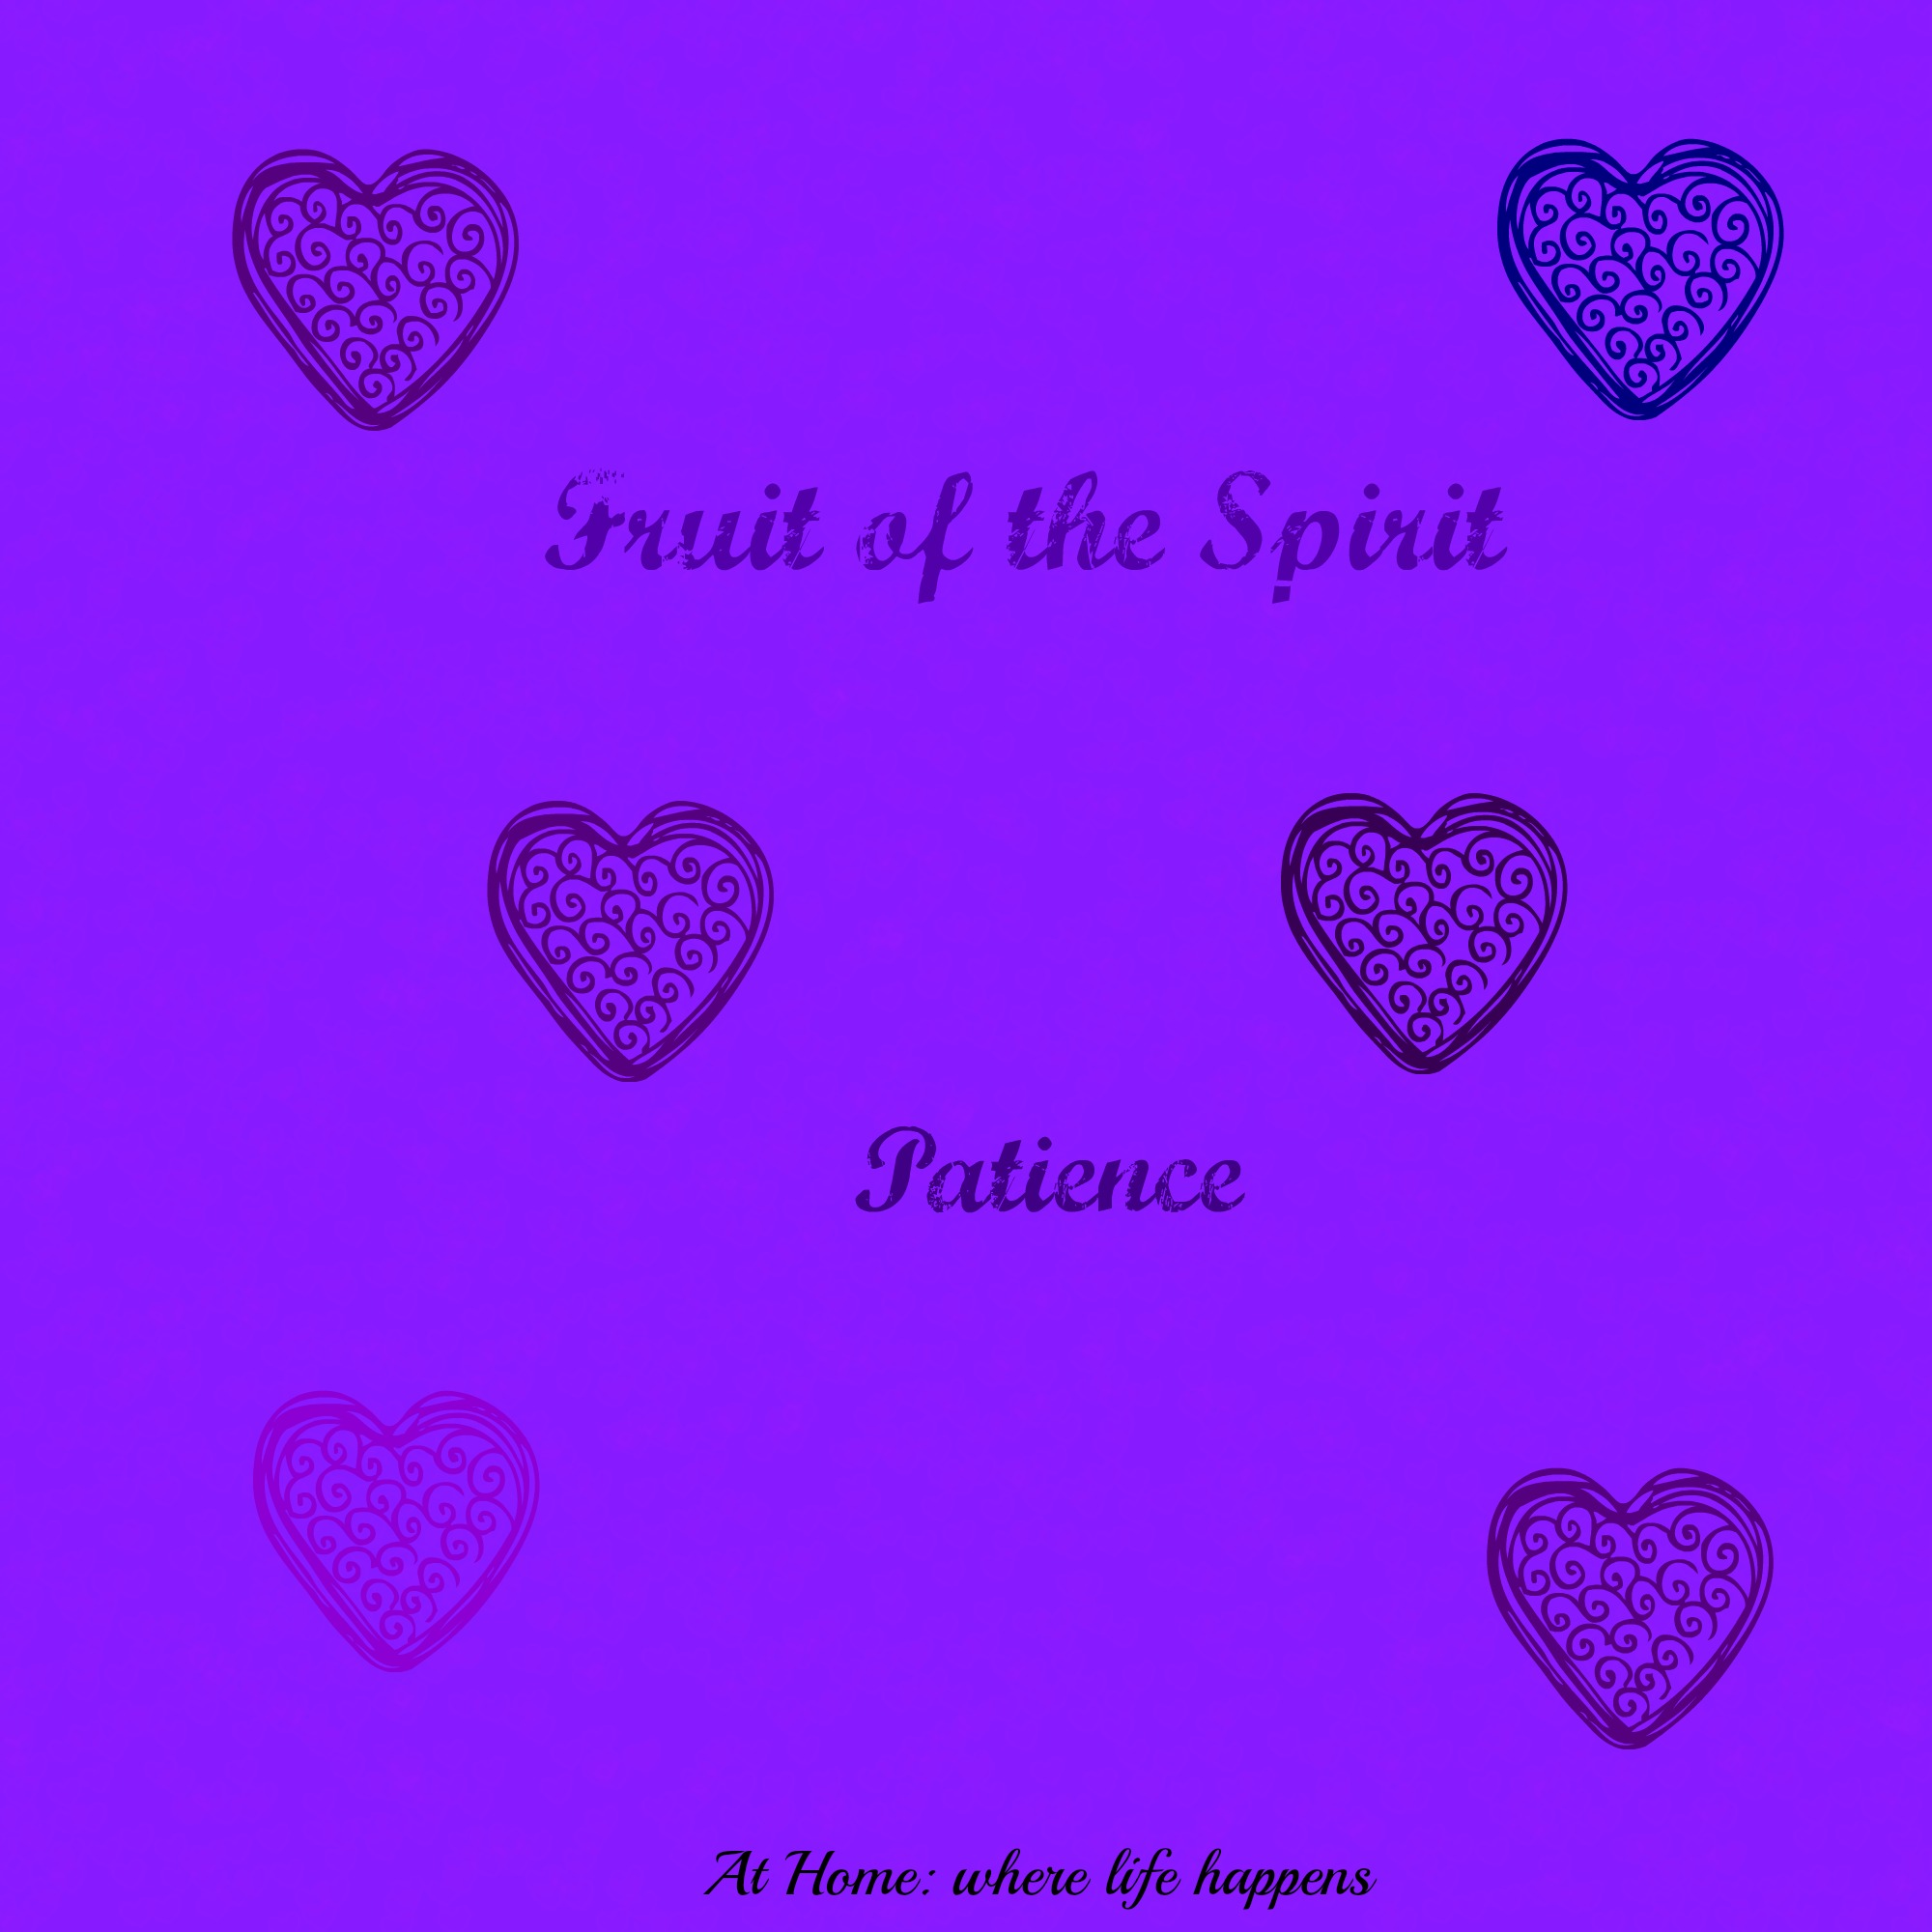 fruit of the spirit u2013 patience at home